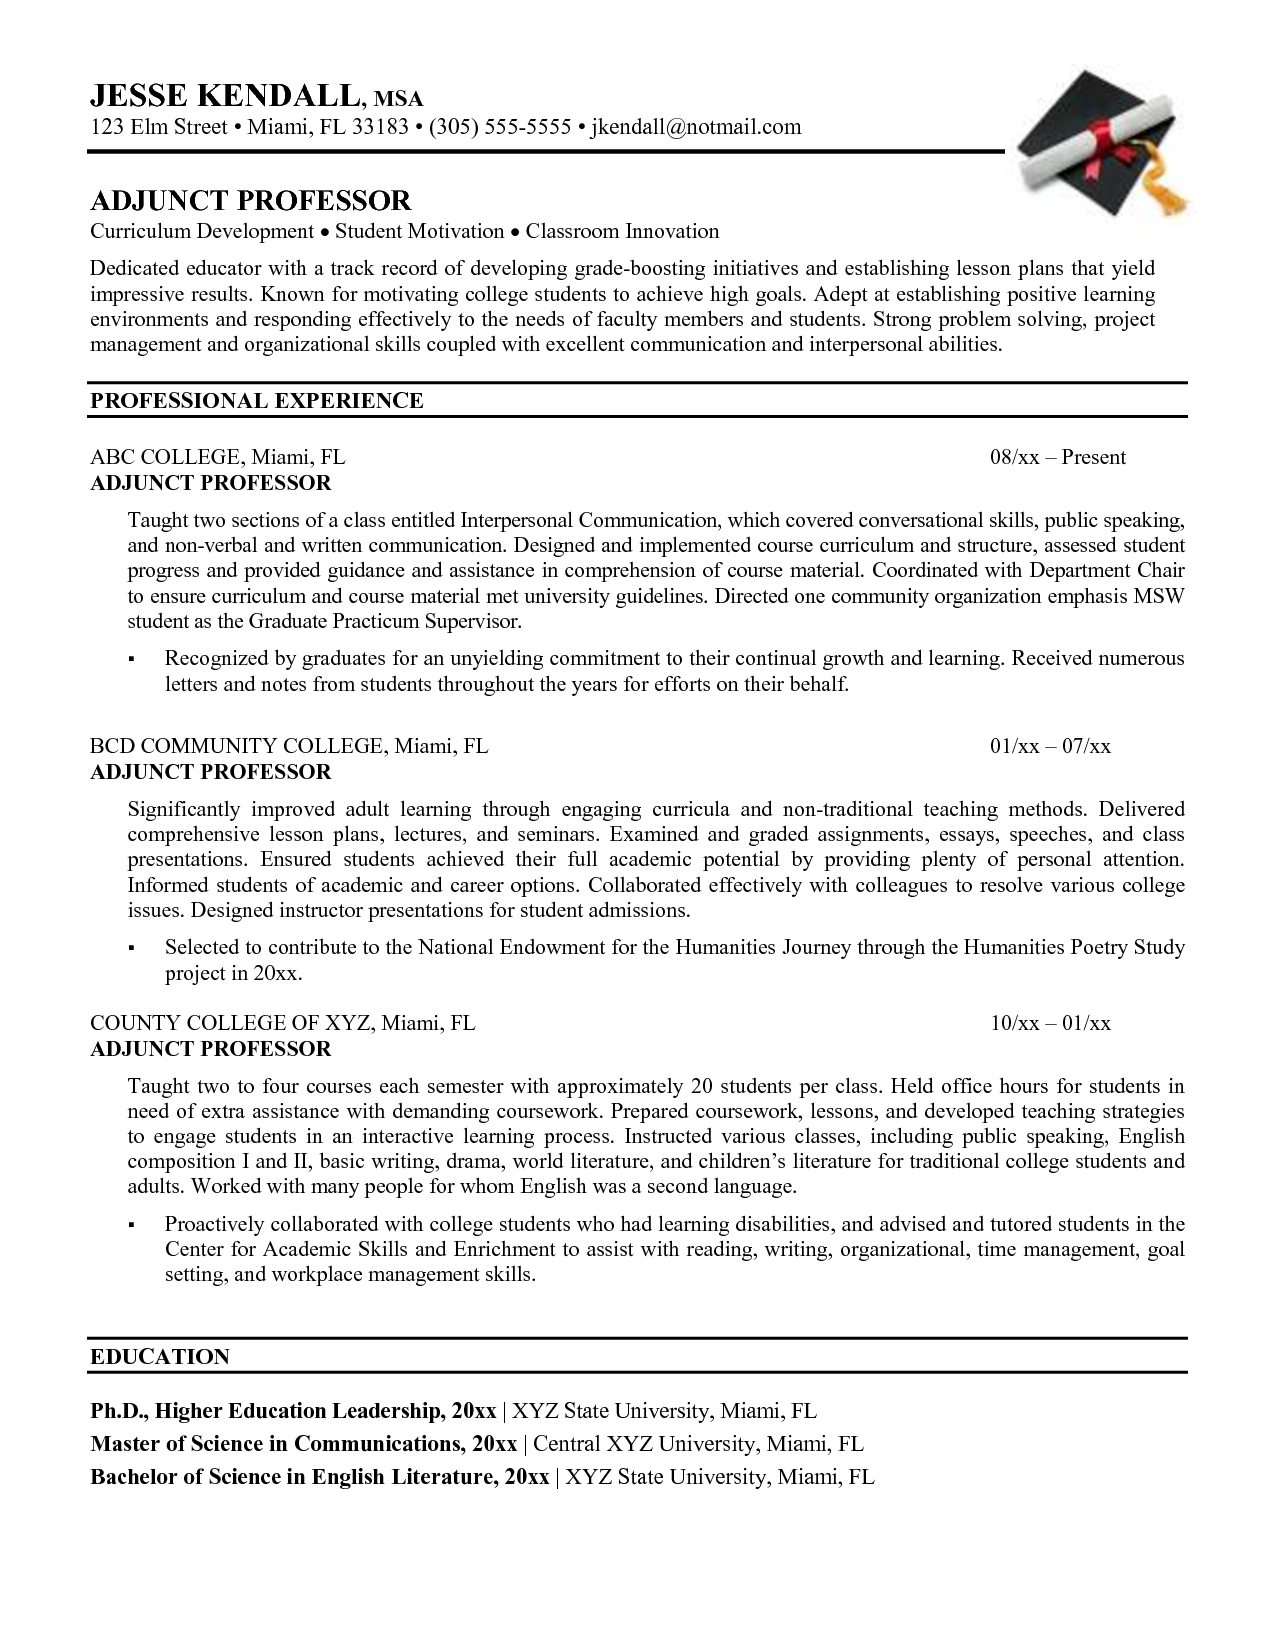 Best Resumes Examples Sample Resume For Faculty Position Engineering Adjunct Professor